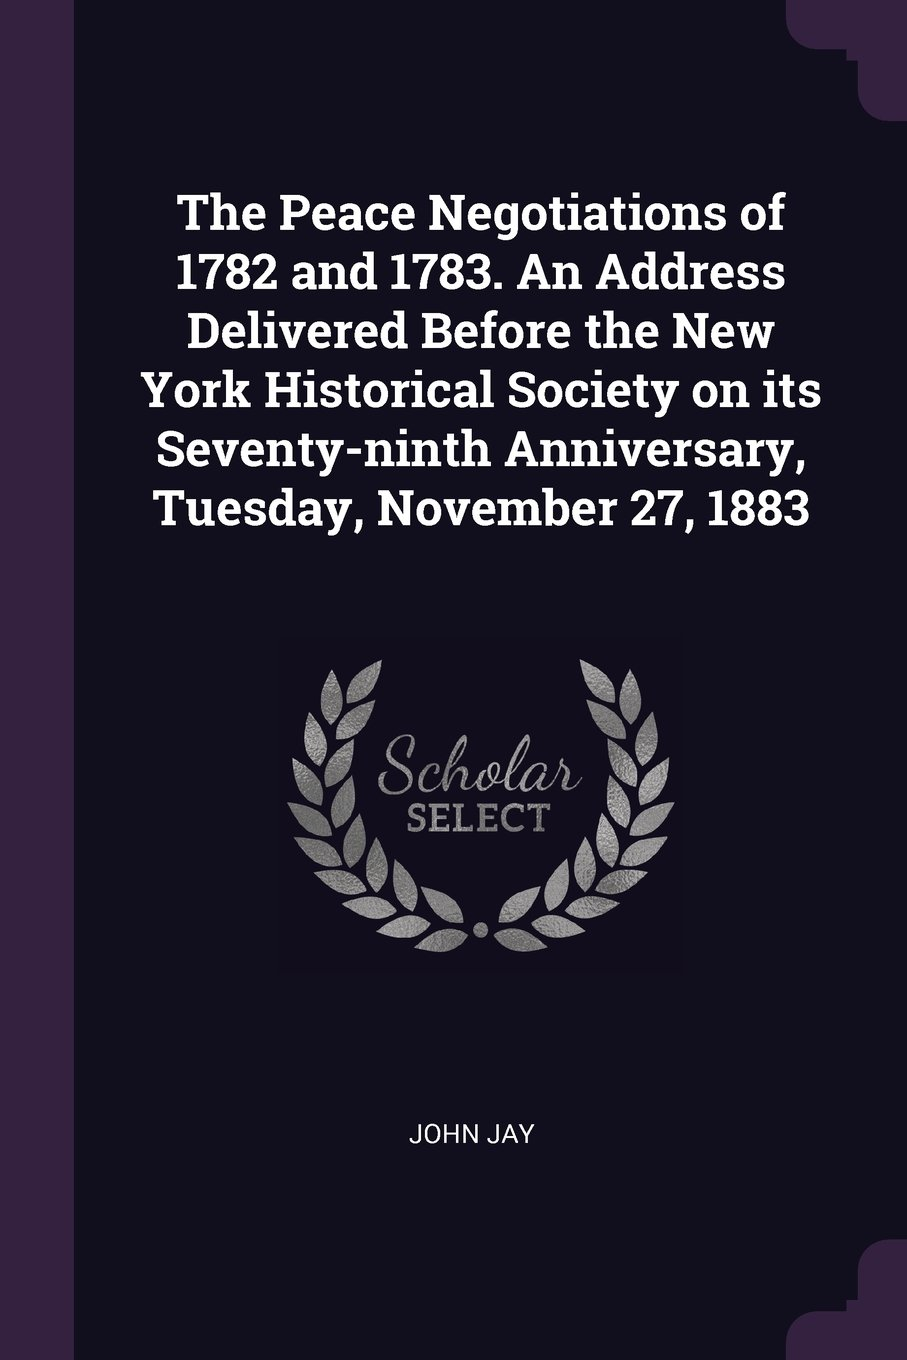 The Peace Negotiations of 1782 and 1783. An Address Delivered Before the New York Historical Society on its Seventy-ninth Anniversary, Tuesday, November 27, 1883 pdf epub